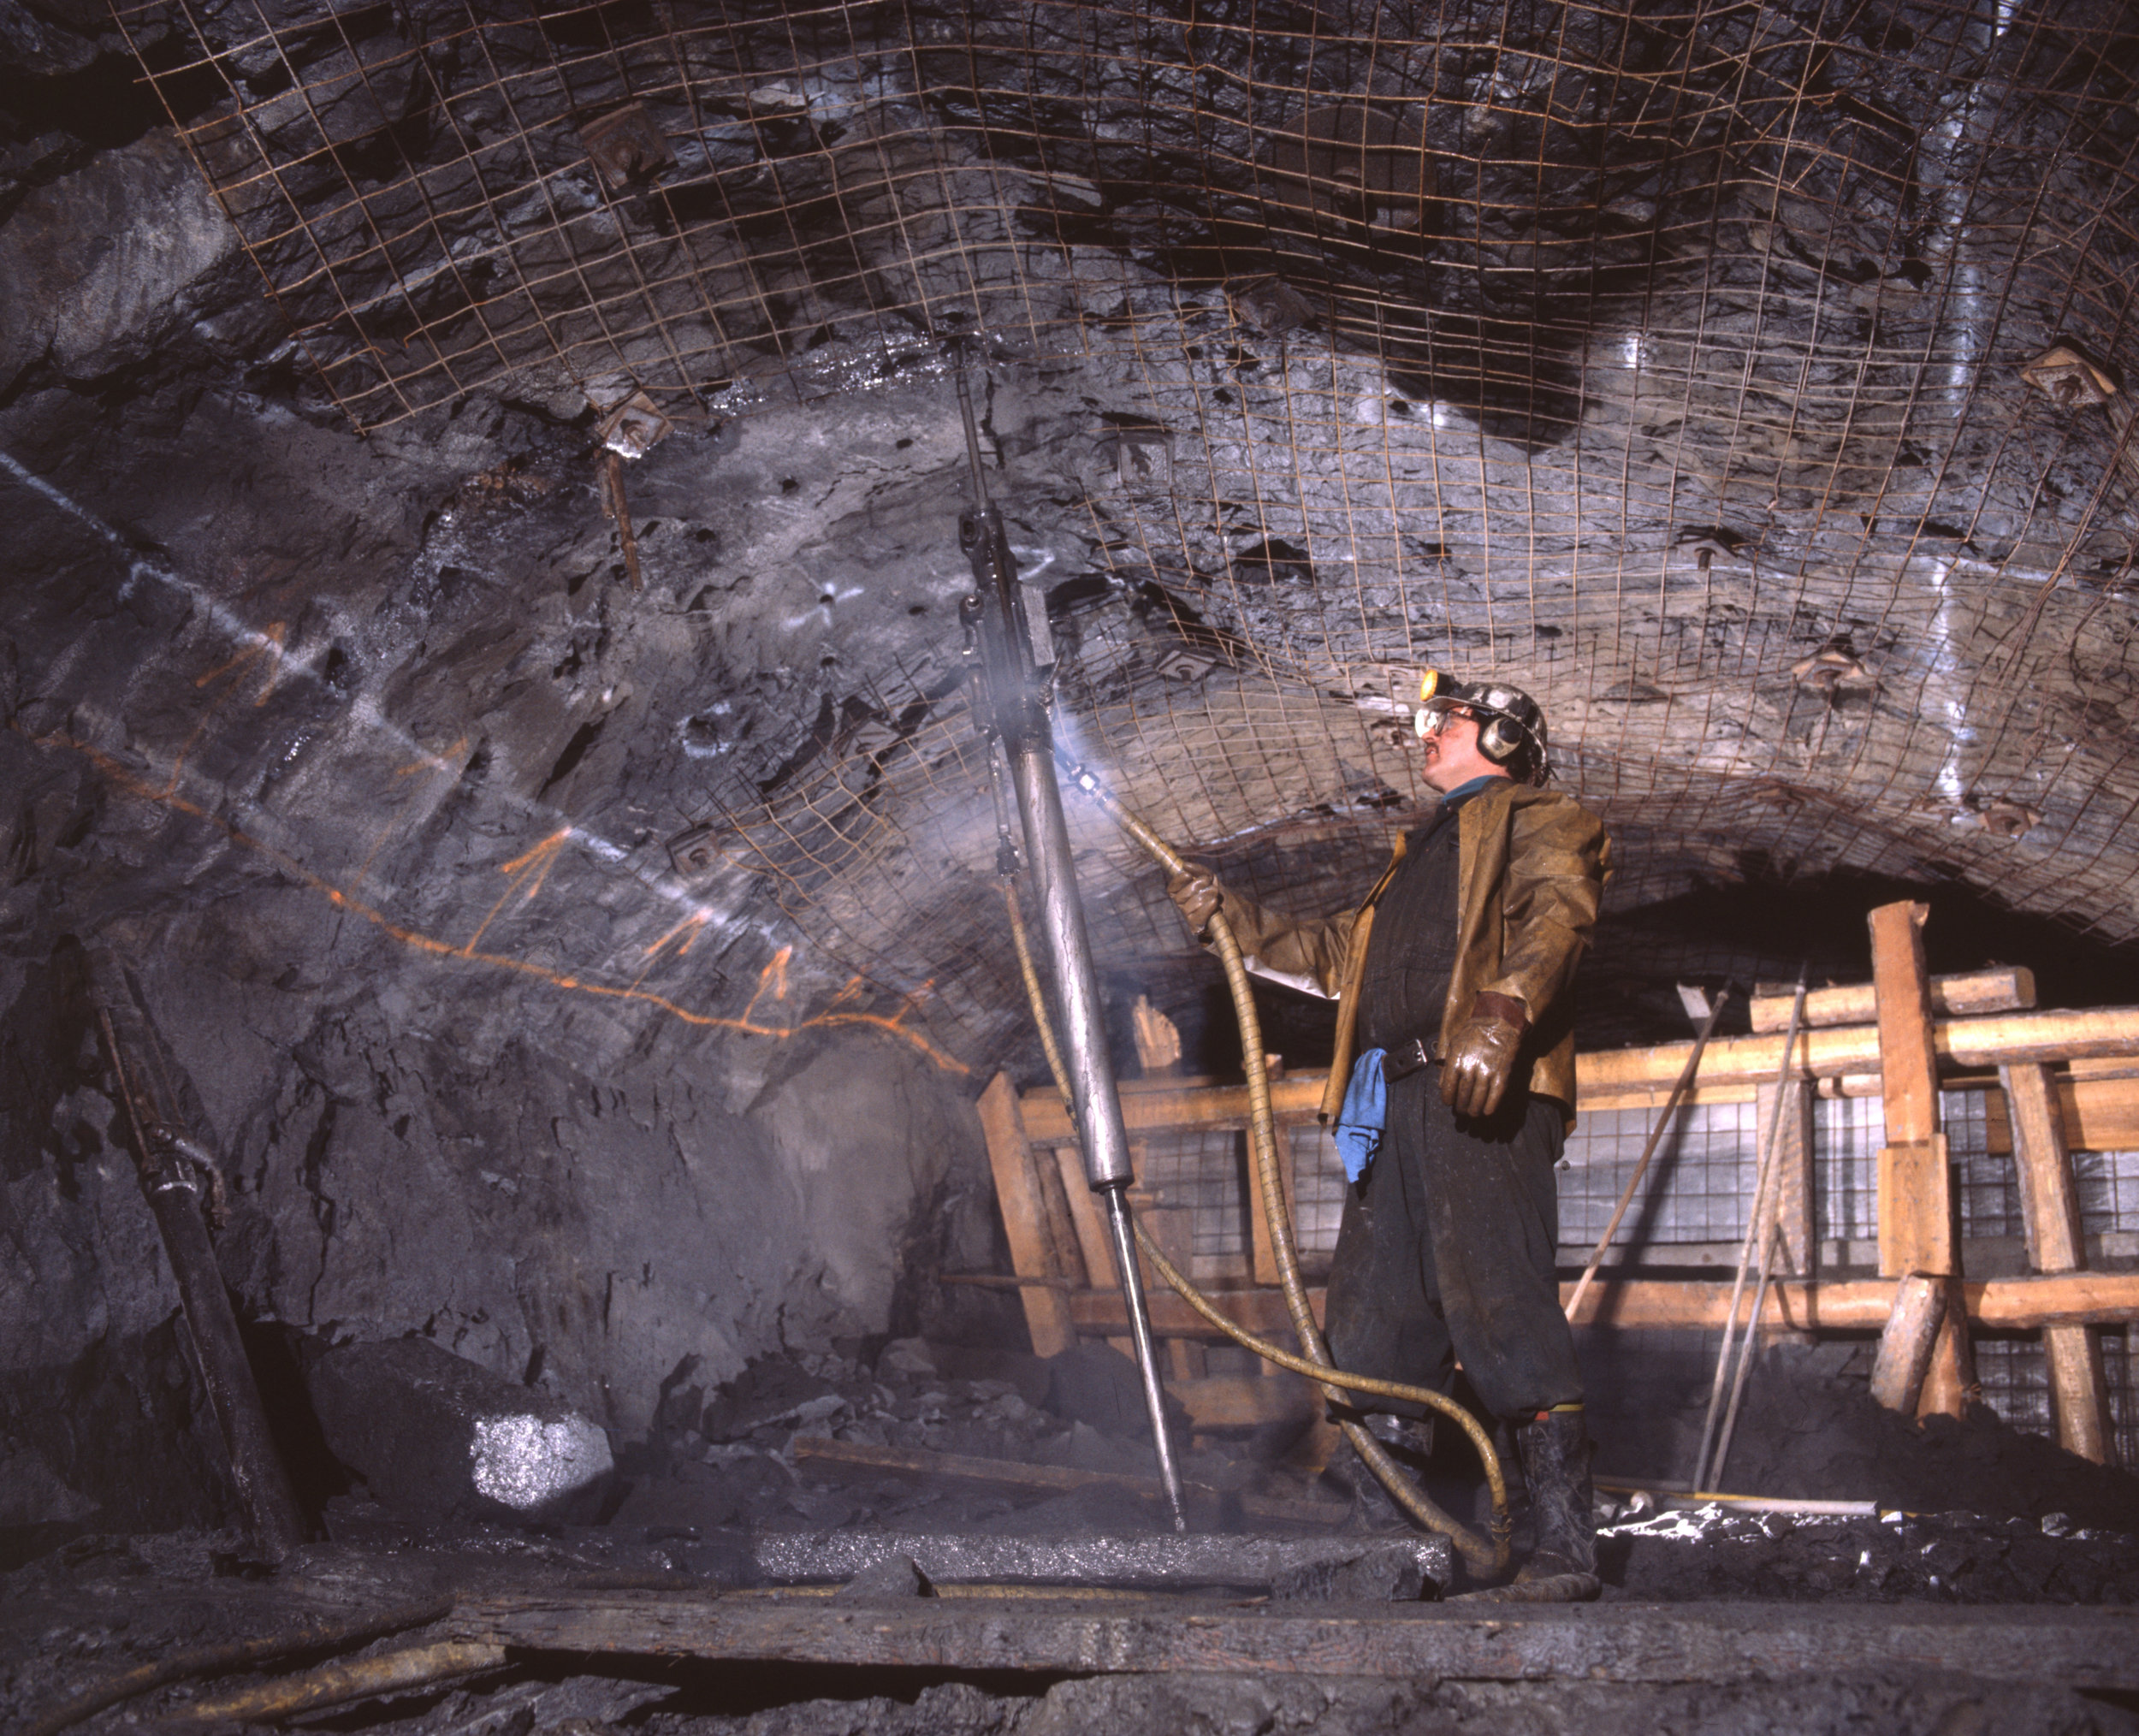 At a small gold mine, miner drills in drift for installation of roofing bolts.